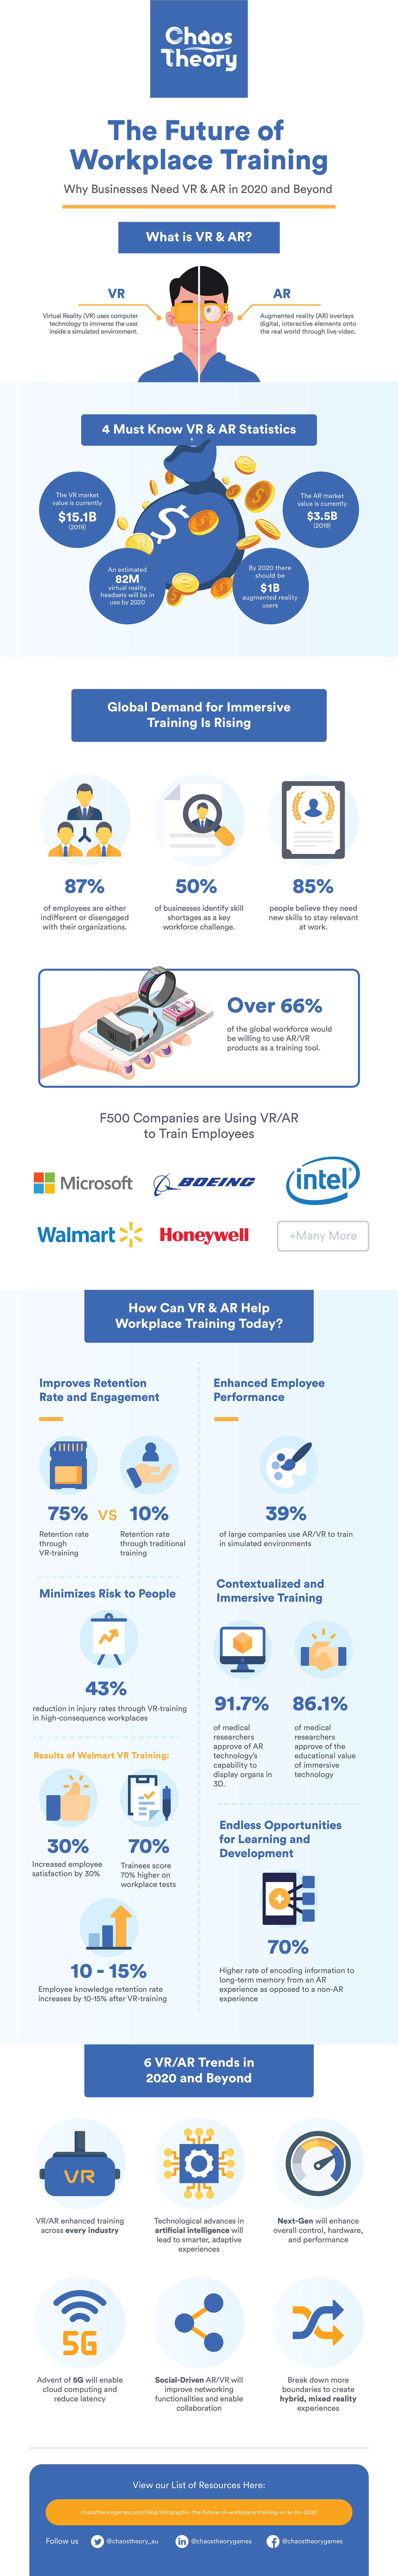 The Future of Workplace Training 2020 Infographic by Chaos Theory